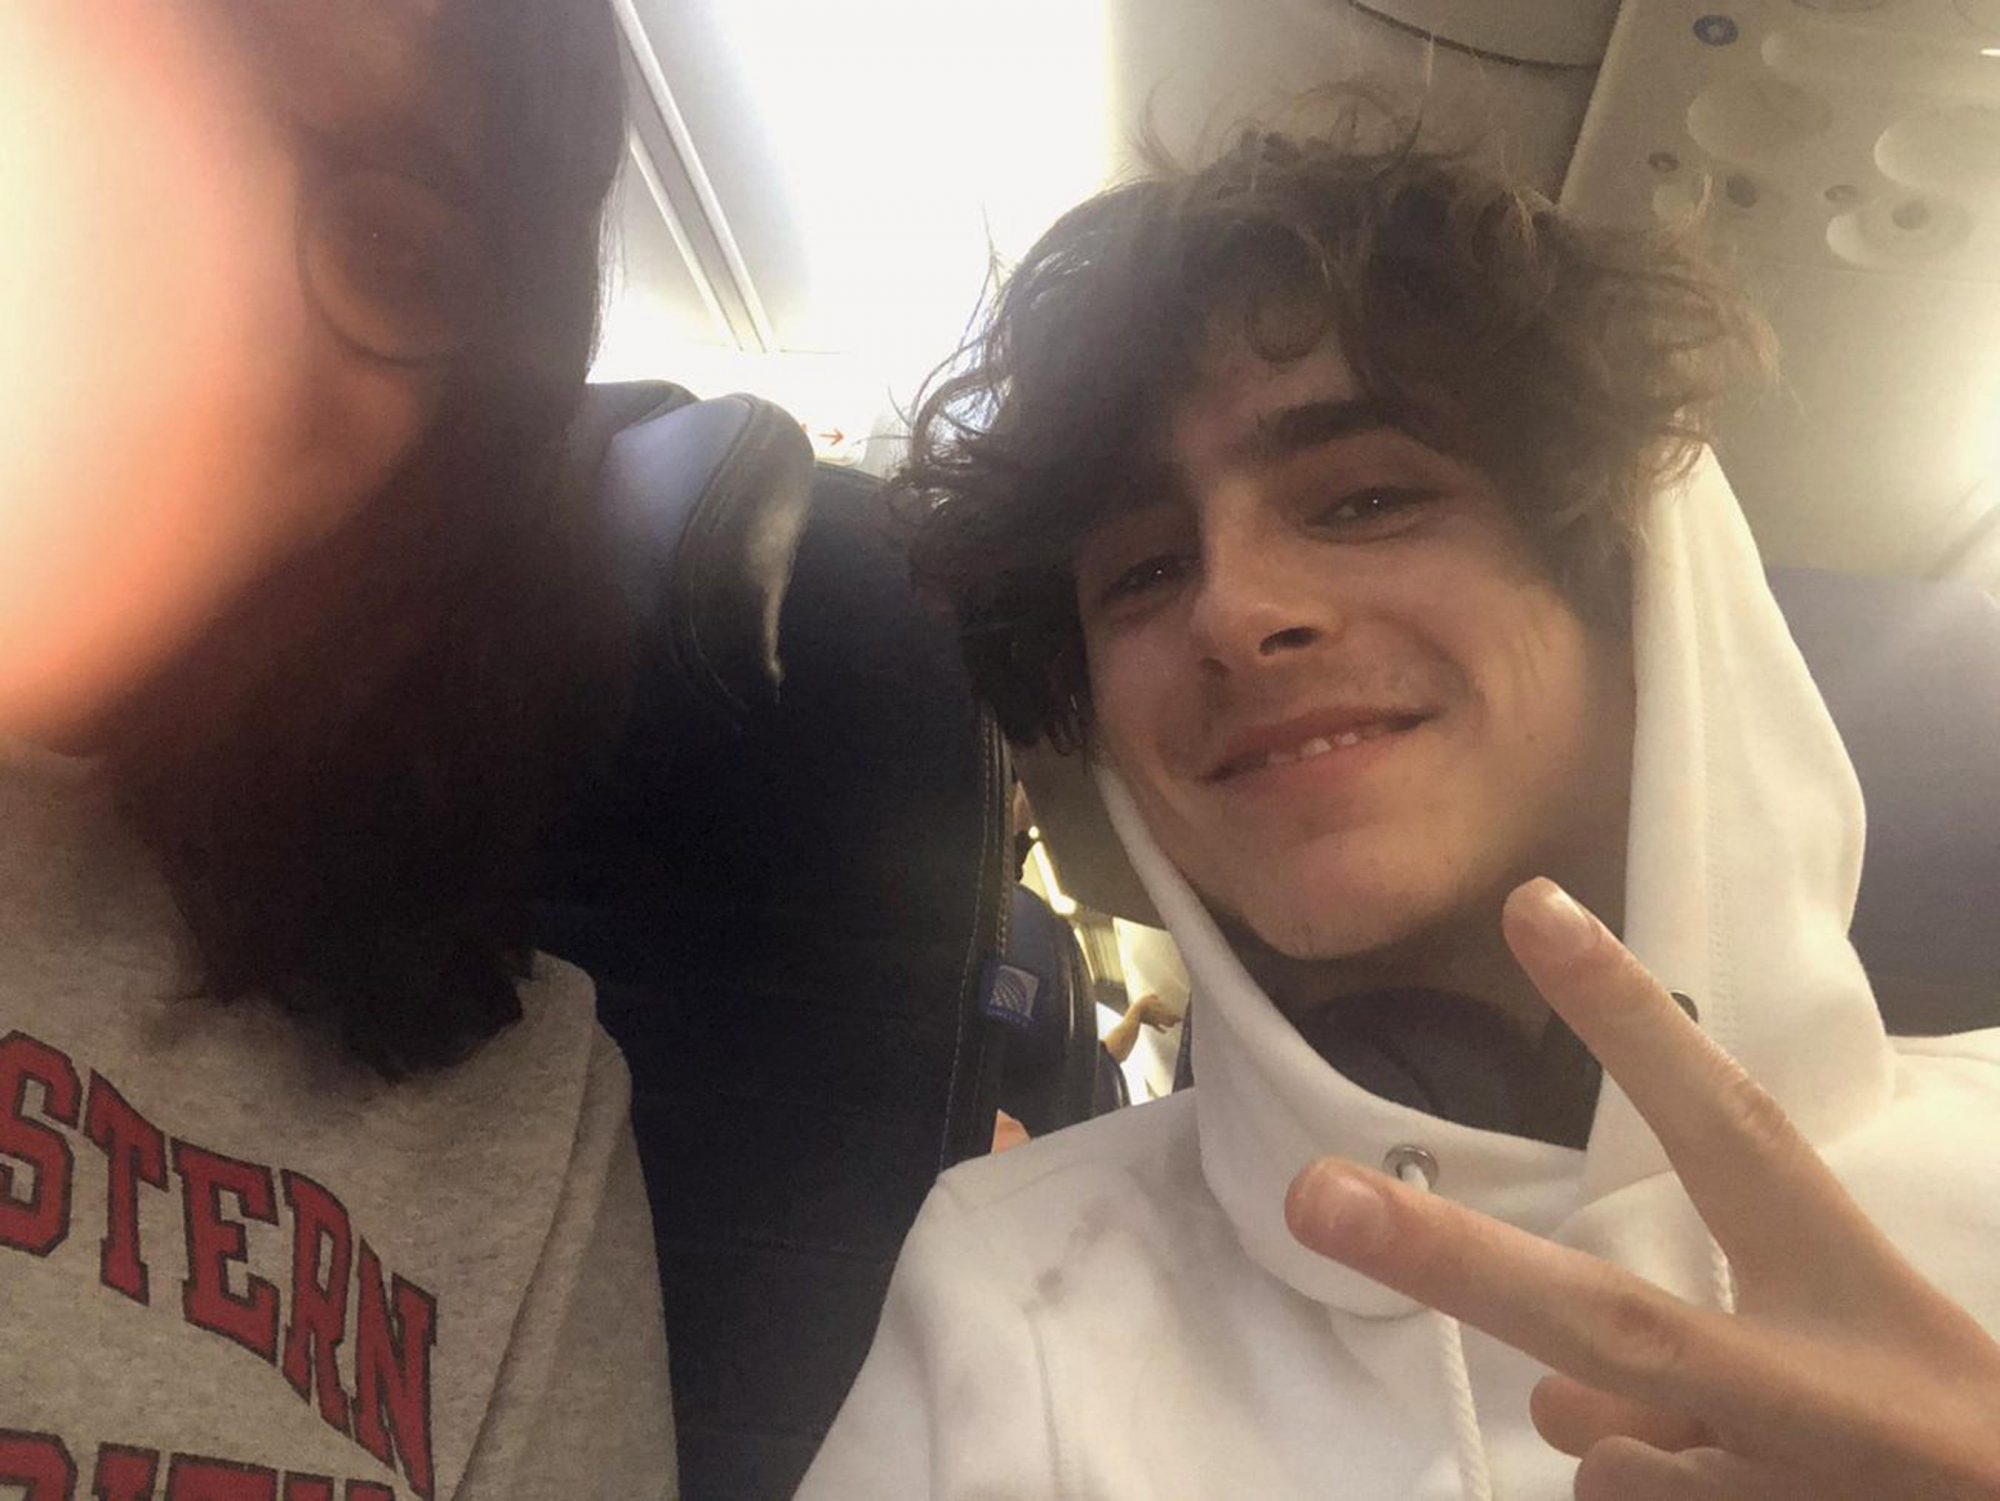 """The actor, 23, proved he's a nice person when he was seated on a plane- in economy class-next to superfan Alankrutha Giridhar, who live-tweeted the ride (and took this hoodie pic). He answered all of her questions, and she wrote, """"What shocks me the most is this dude wanted to know about me!"""""""